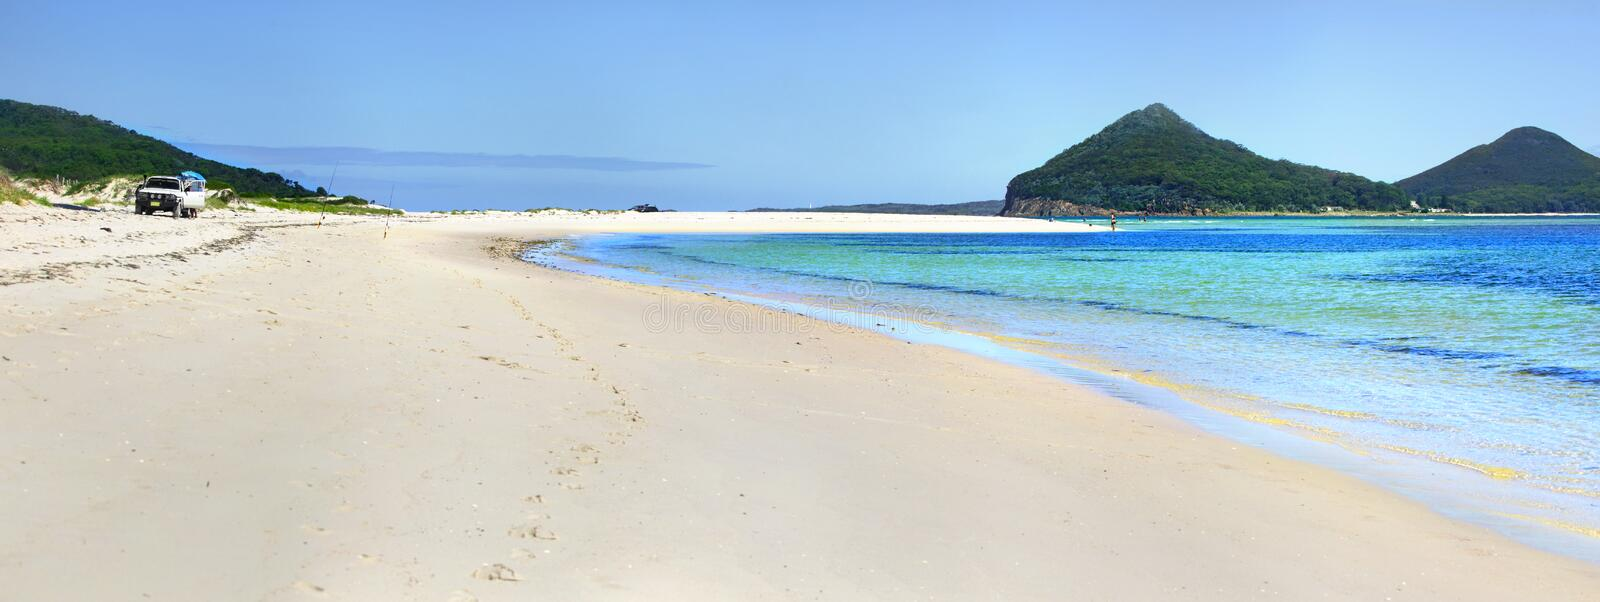 Jimmys Beach Hawks Nest eastern end with Mt Tomaree in view. stock image